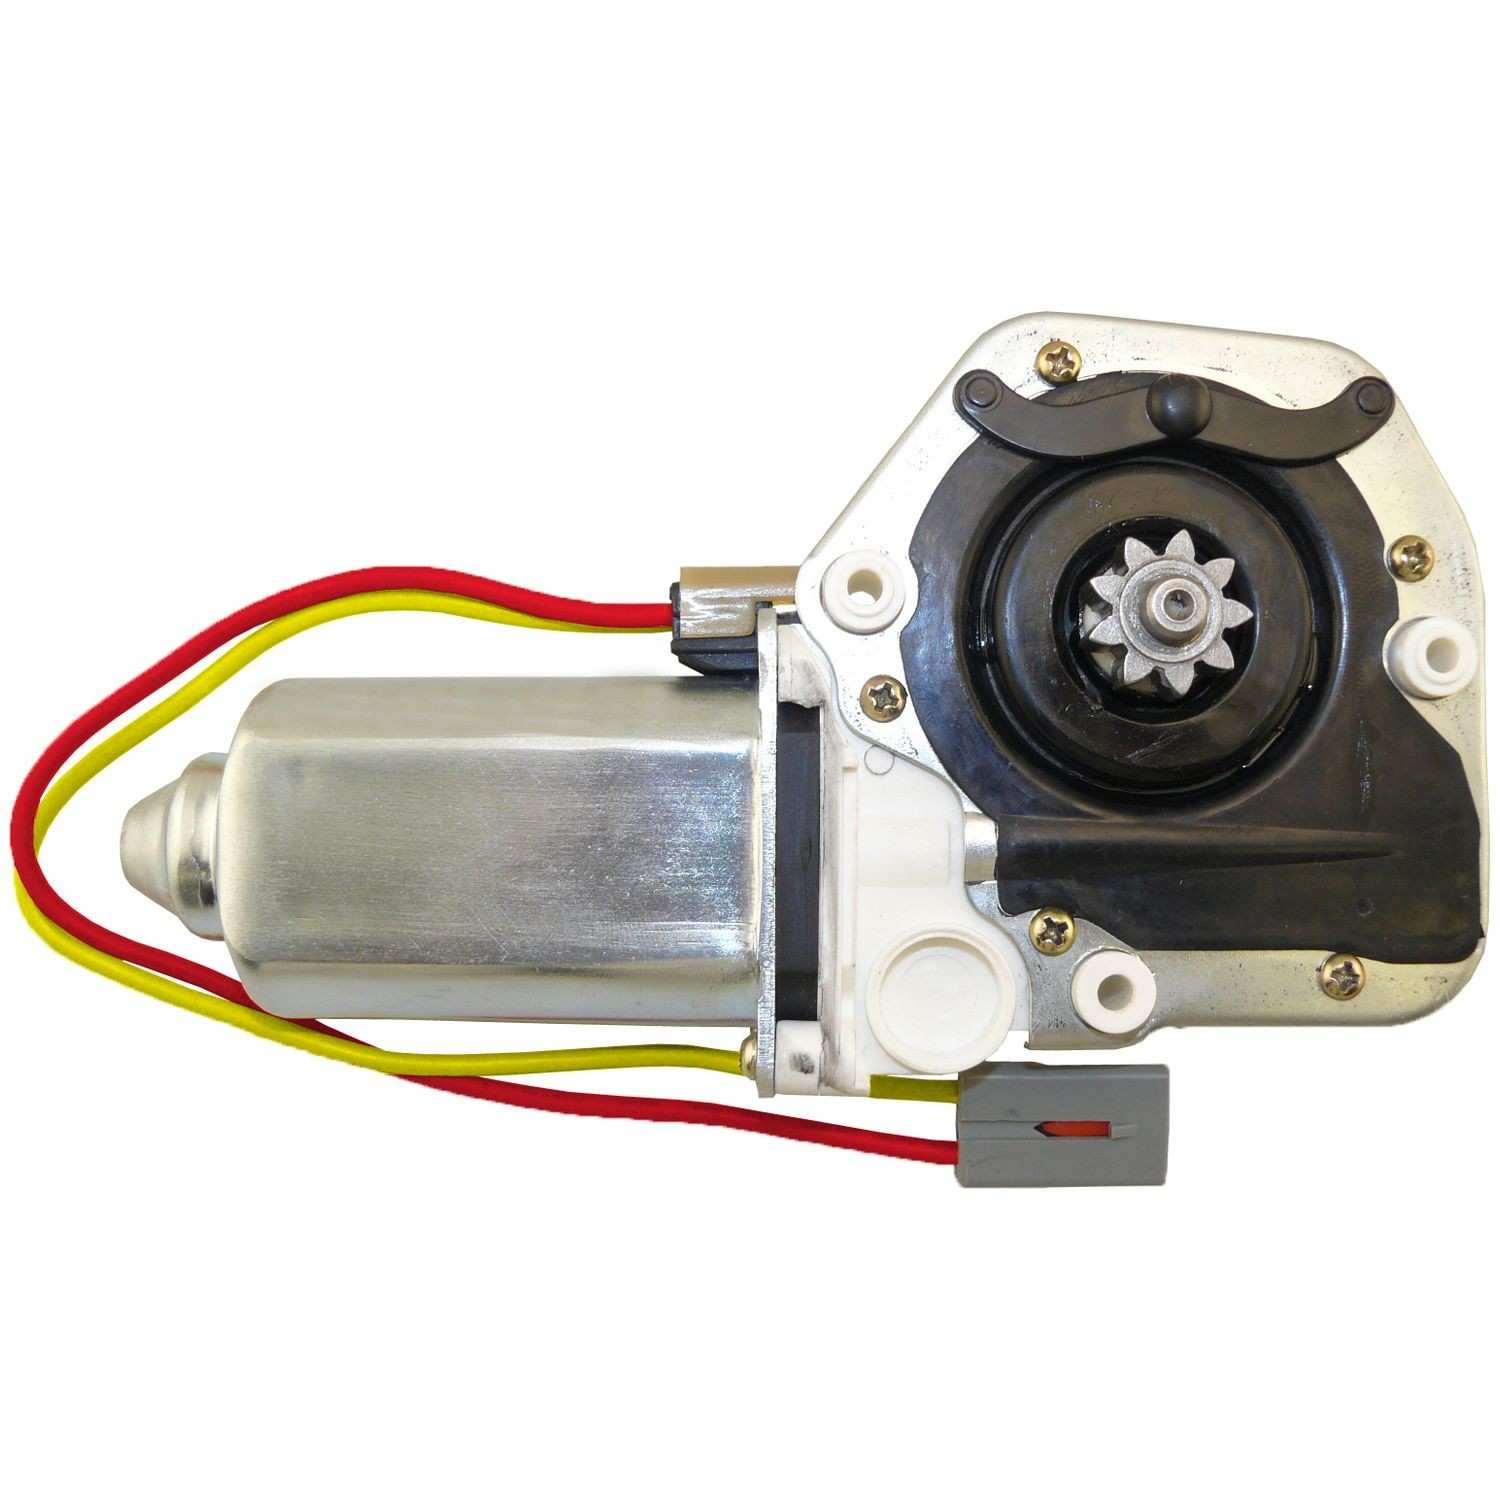 MAGNETI MARELLI OFFERED BY MOPAR - Power Window Motor - MGM 1AMWM83120